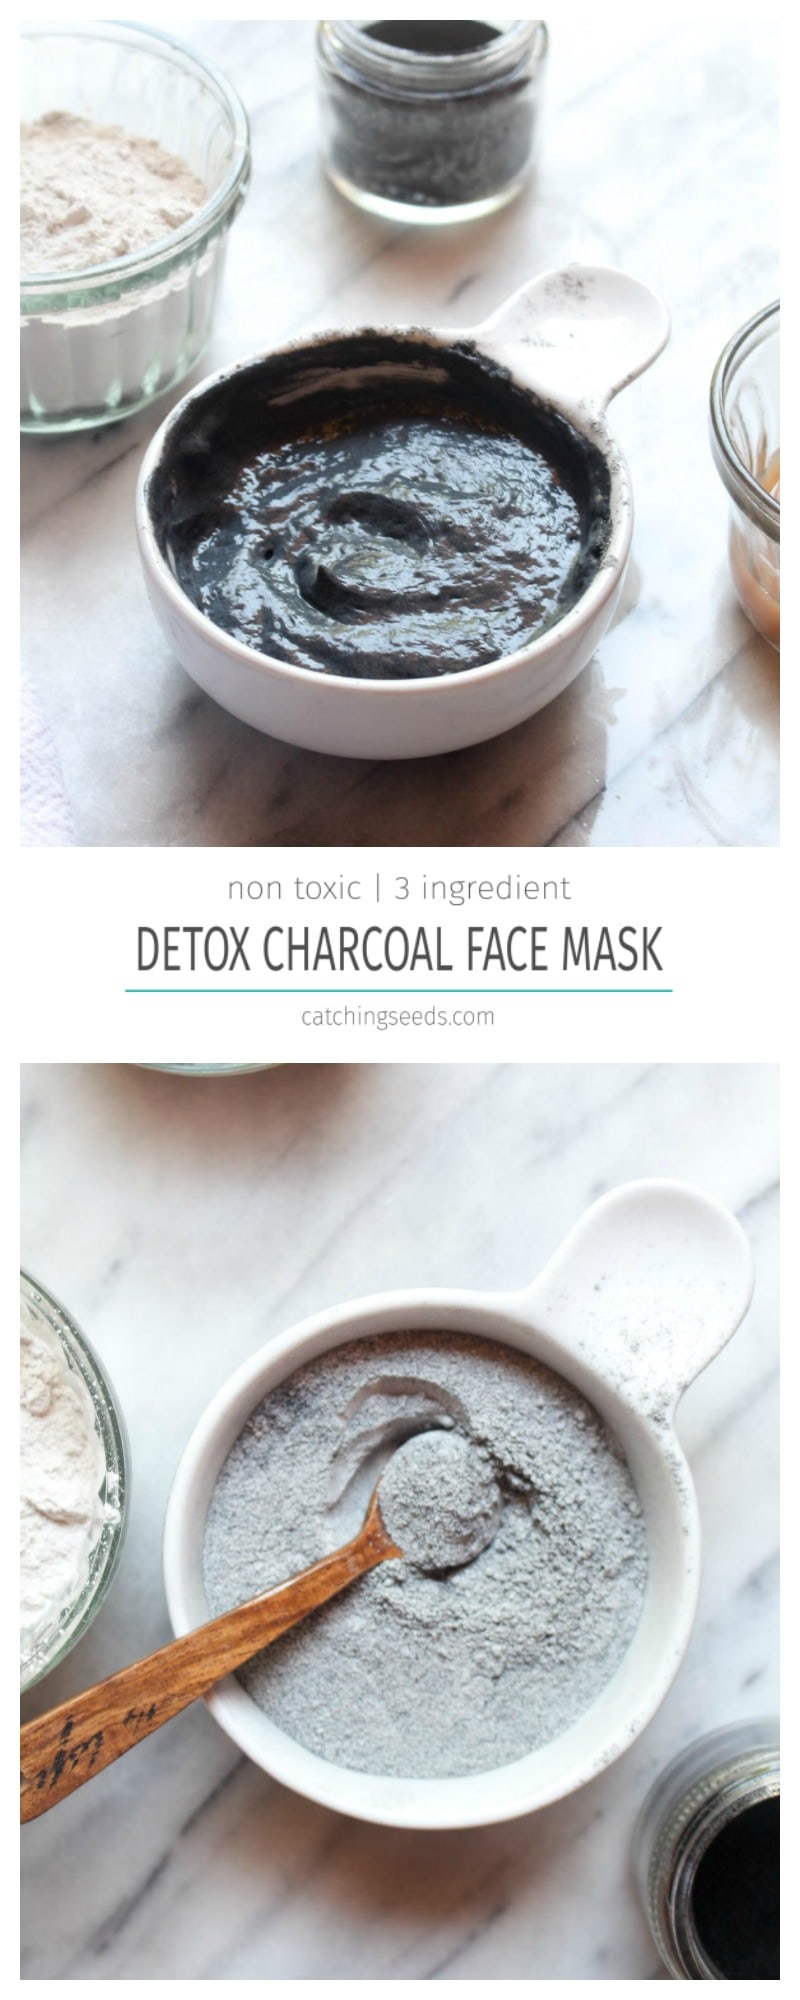 This easy DIY Detox Charcoal Face Mask offers all the benefits of the fancy store bought masks, at a fraction of the cost! Charcoal and clay will pull dirt and oil from your pores and leave you with soft clean skin and visibly smaller pores. | CatchngSeeds.com